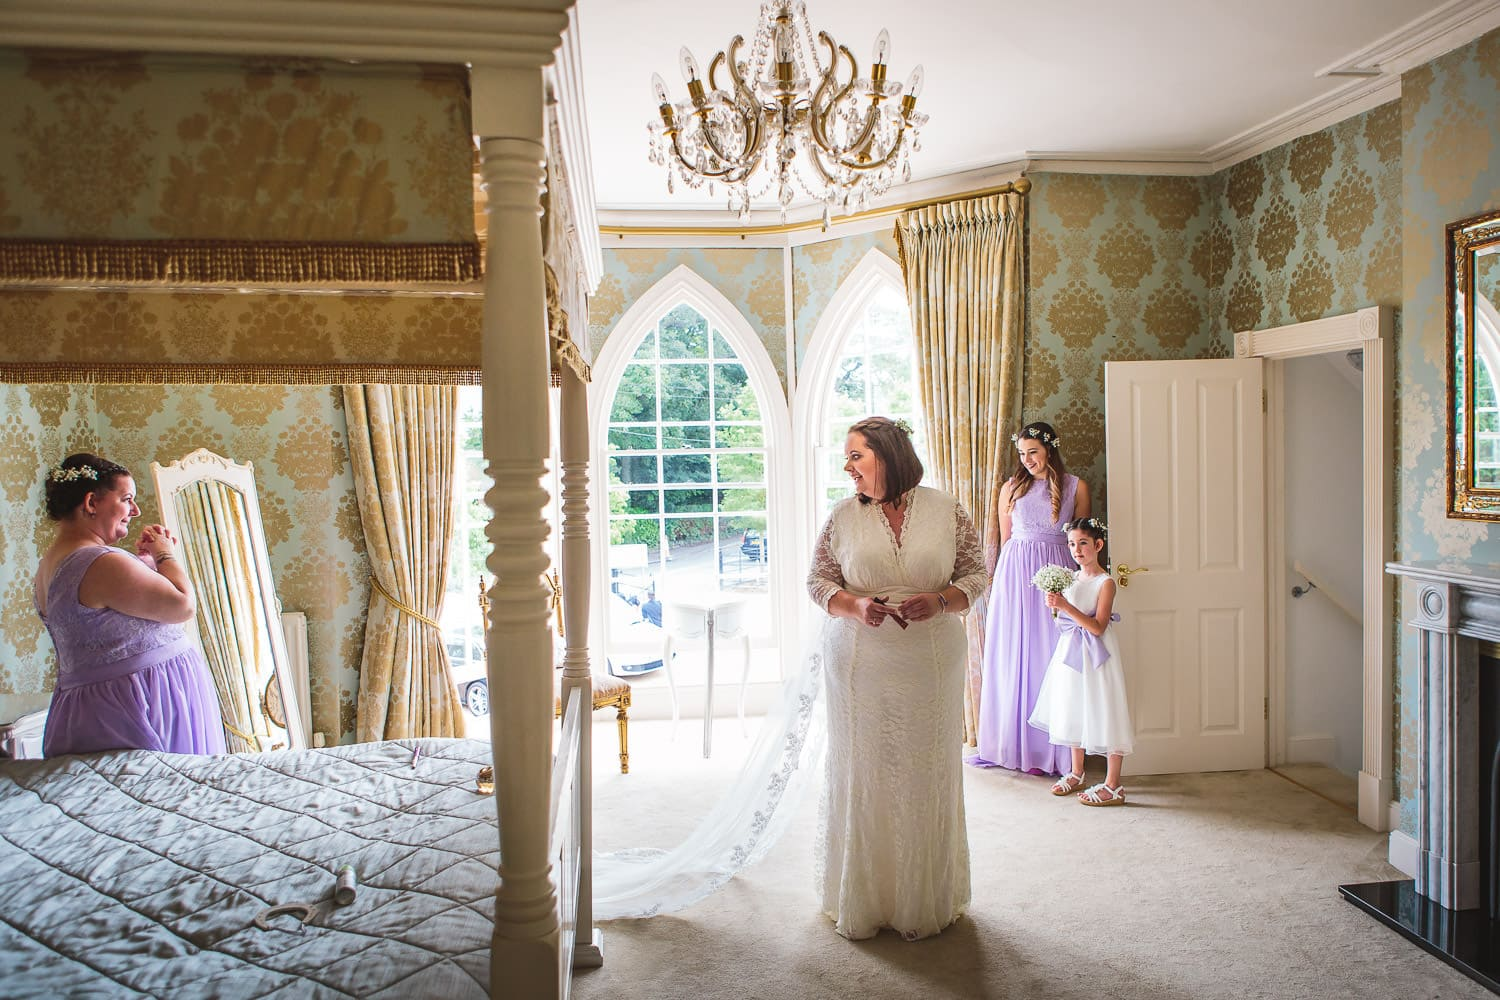 bridal party help to get bride ready in beautiful room at warwick house wedding